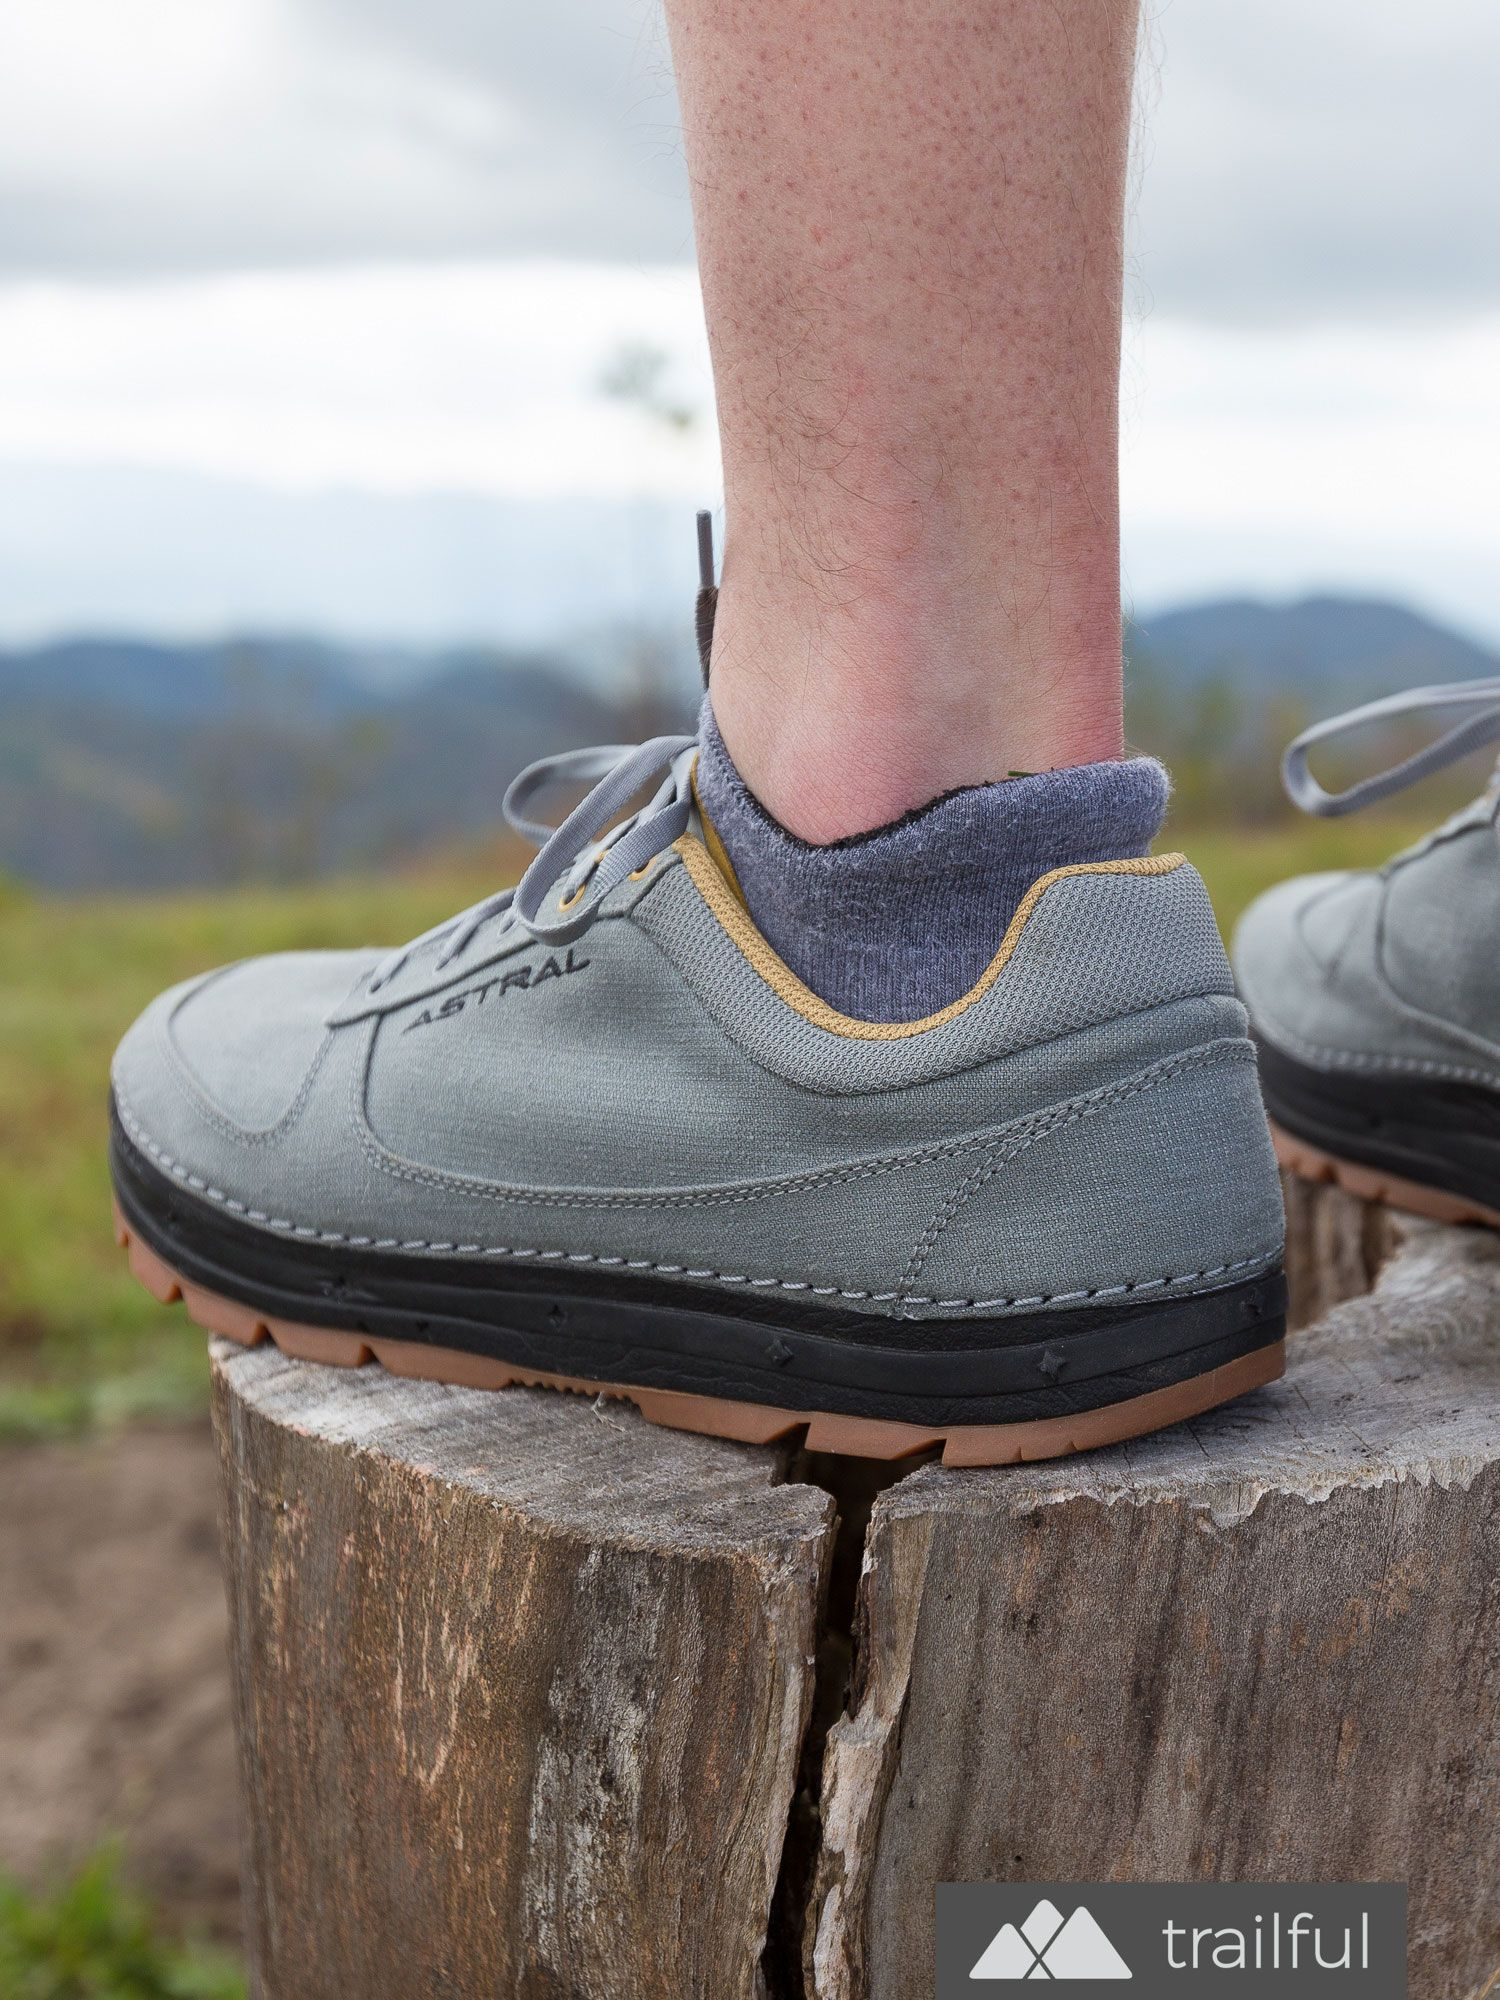 862137d4d0e Astral Hemp Donner hiking shoe review | Outdoor Apparel: our ...